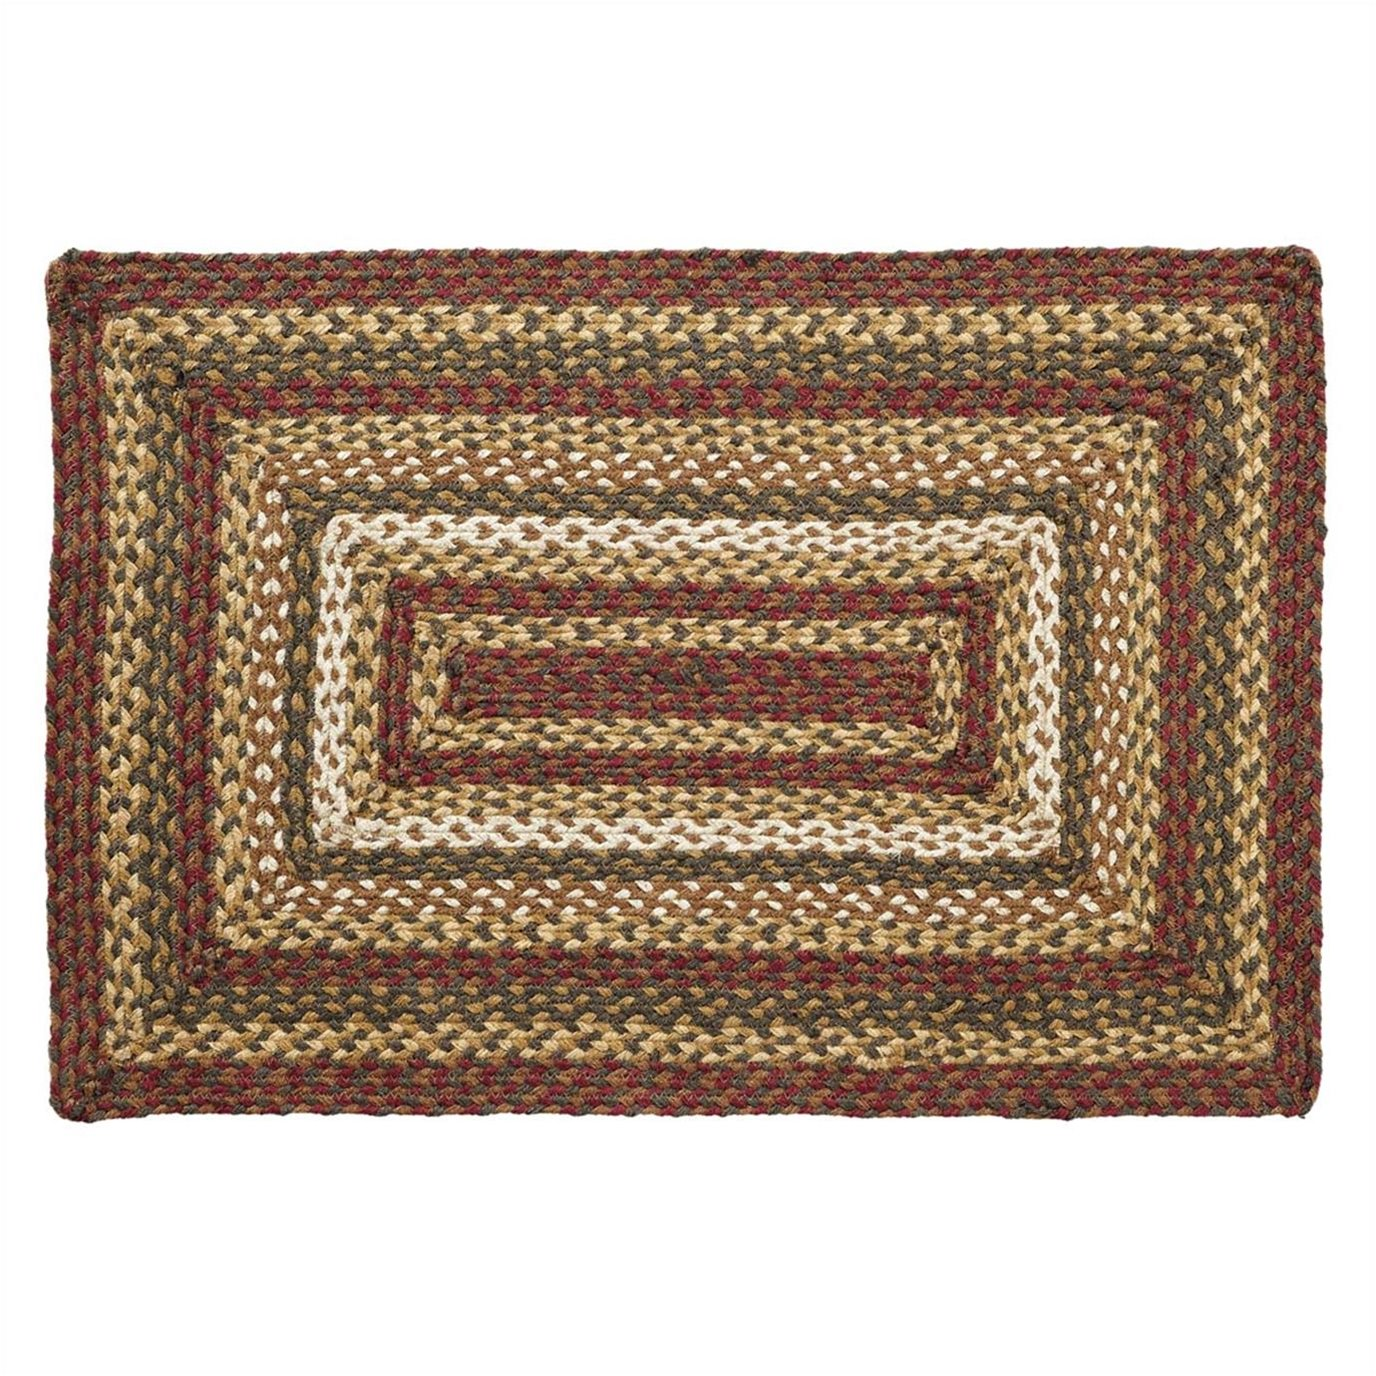 Tea Cabin Jute Rug Rectangular 24x36